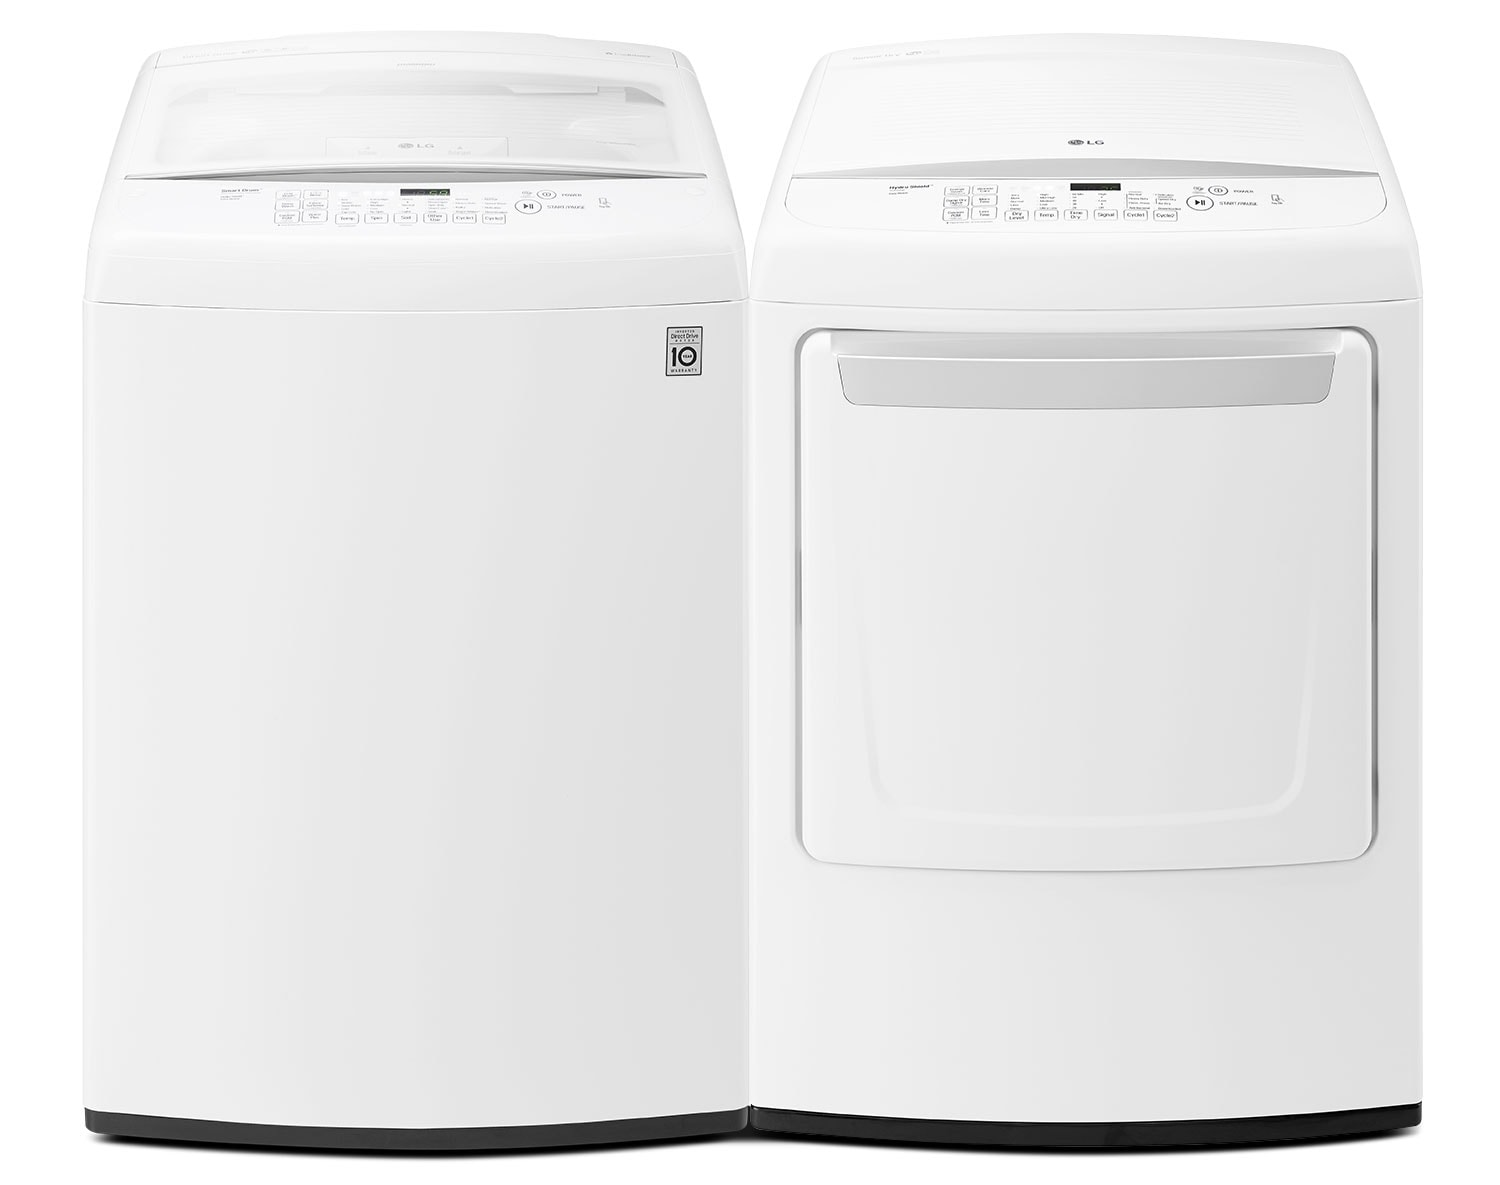 [LG White Top-Load Washer and Dryer Pair]